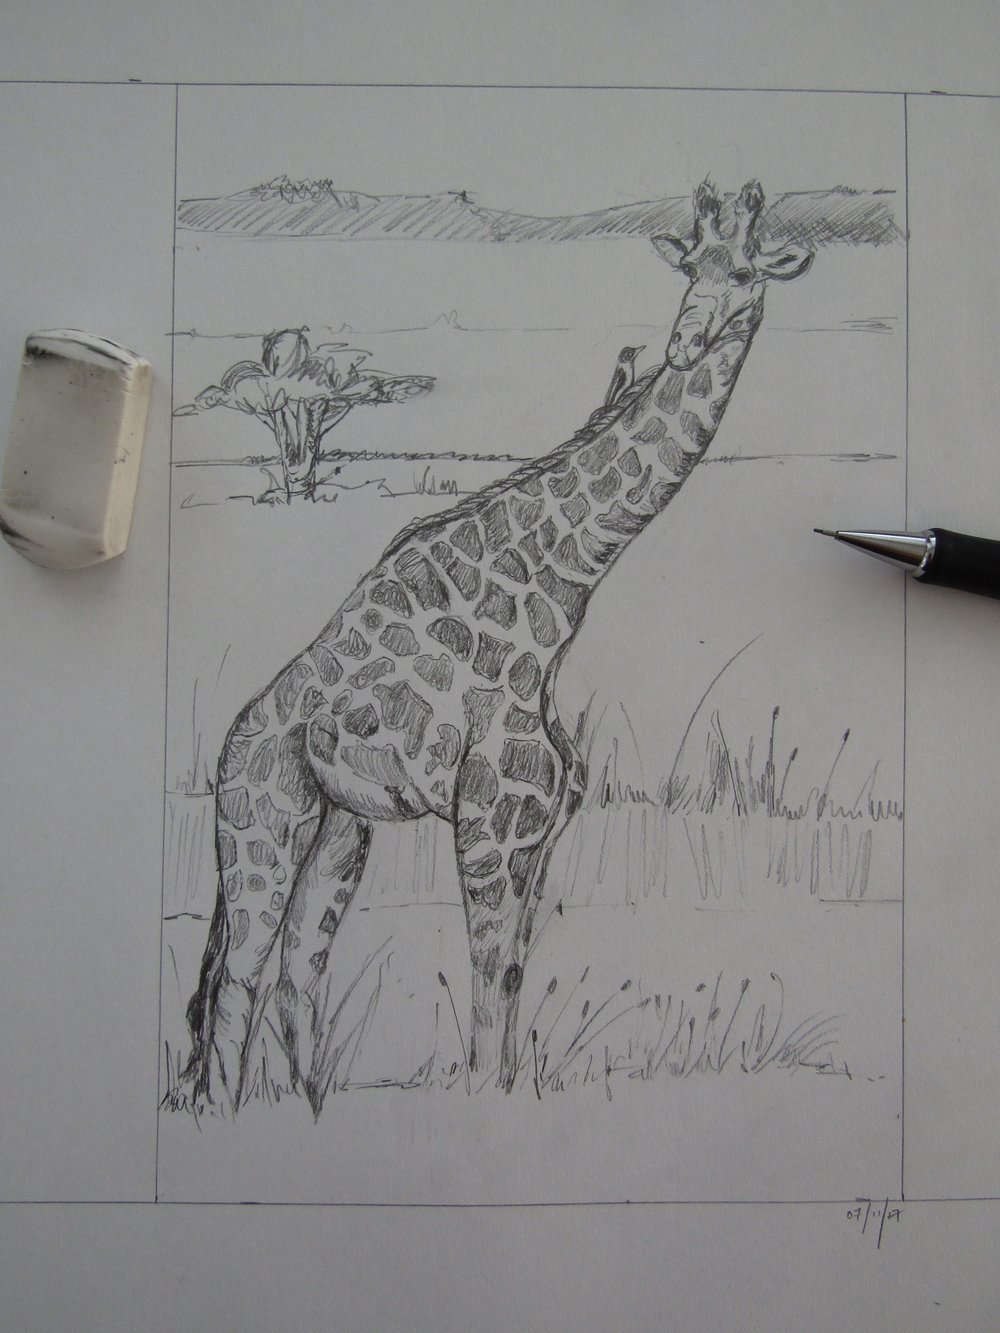 I just had to put the little bird on the giraffe's back - something that often happens. They eat insects off of the giraffes - while 'hitching' a ride!